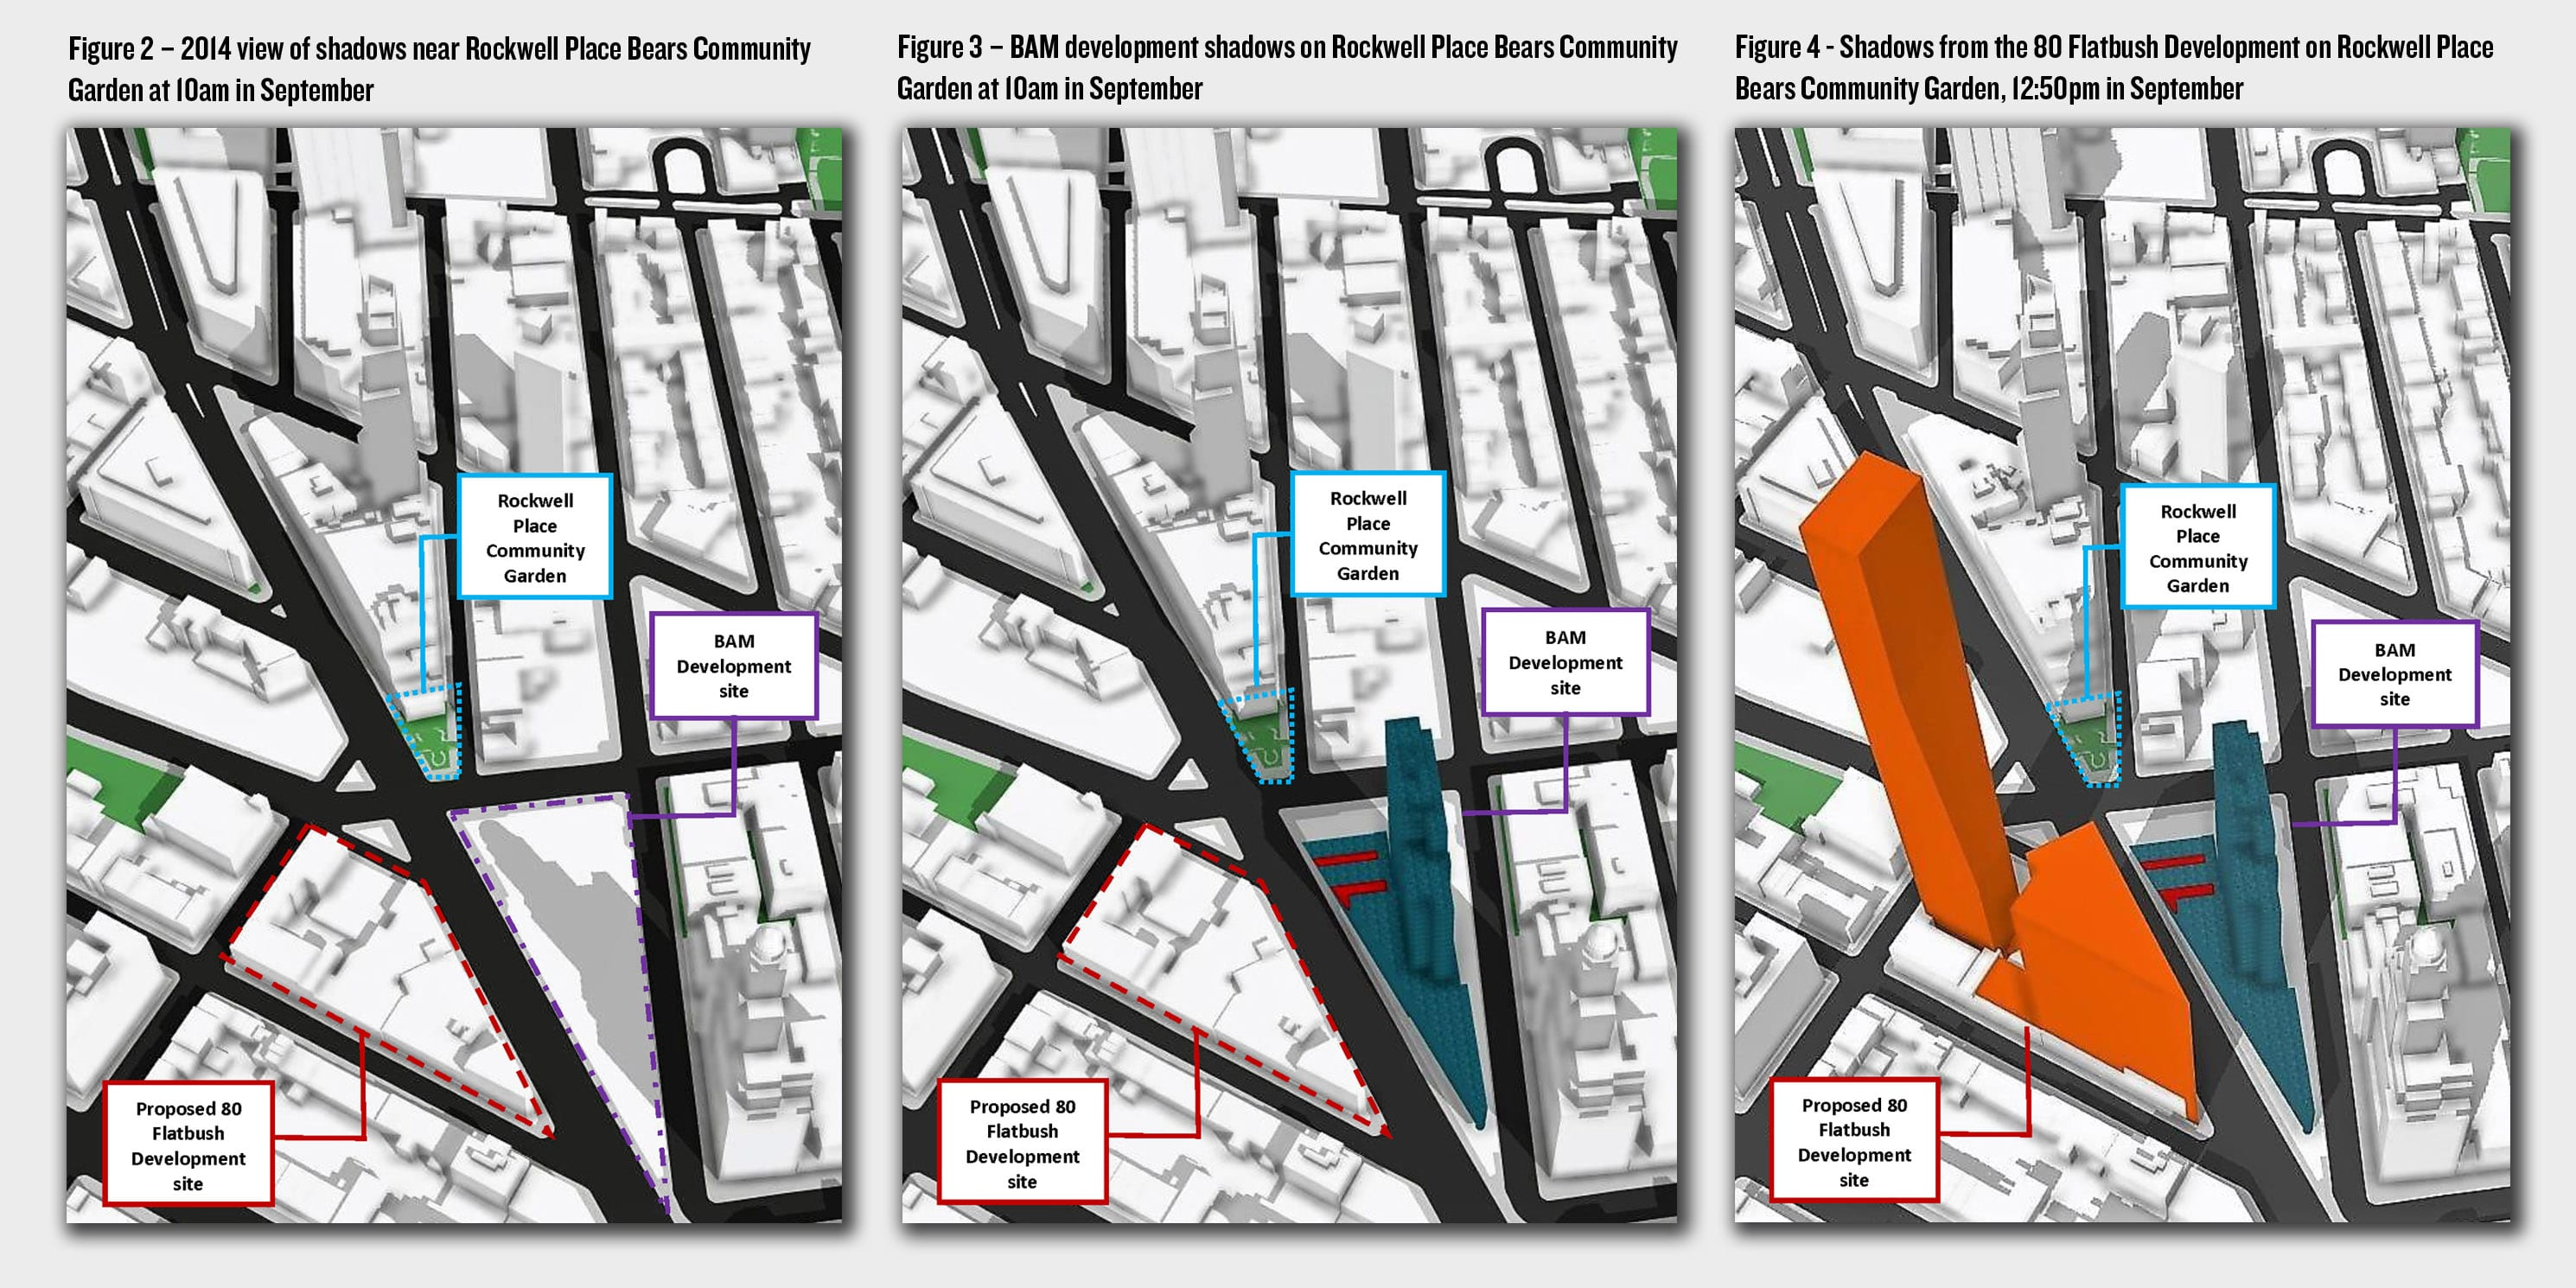 Maps depicting the shadows cast by a proposed development at 80 Flatbush Avenue in Brooklyn